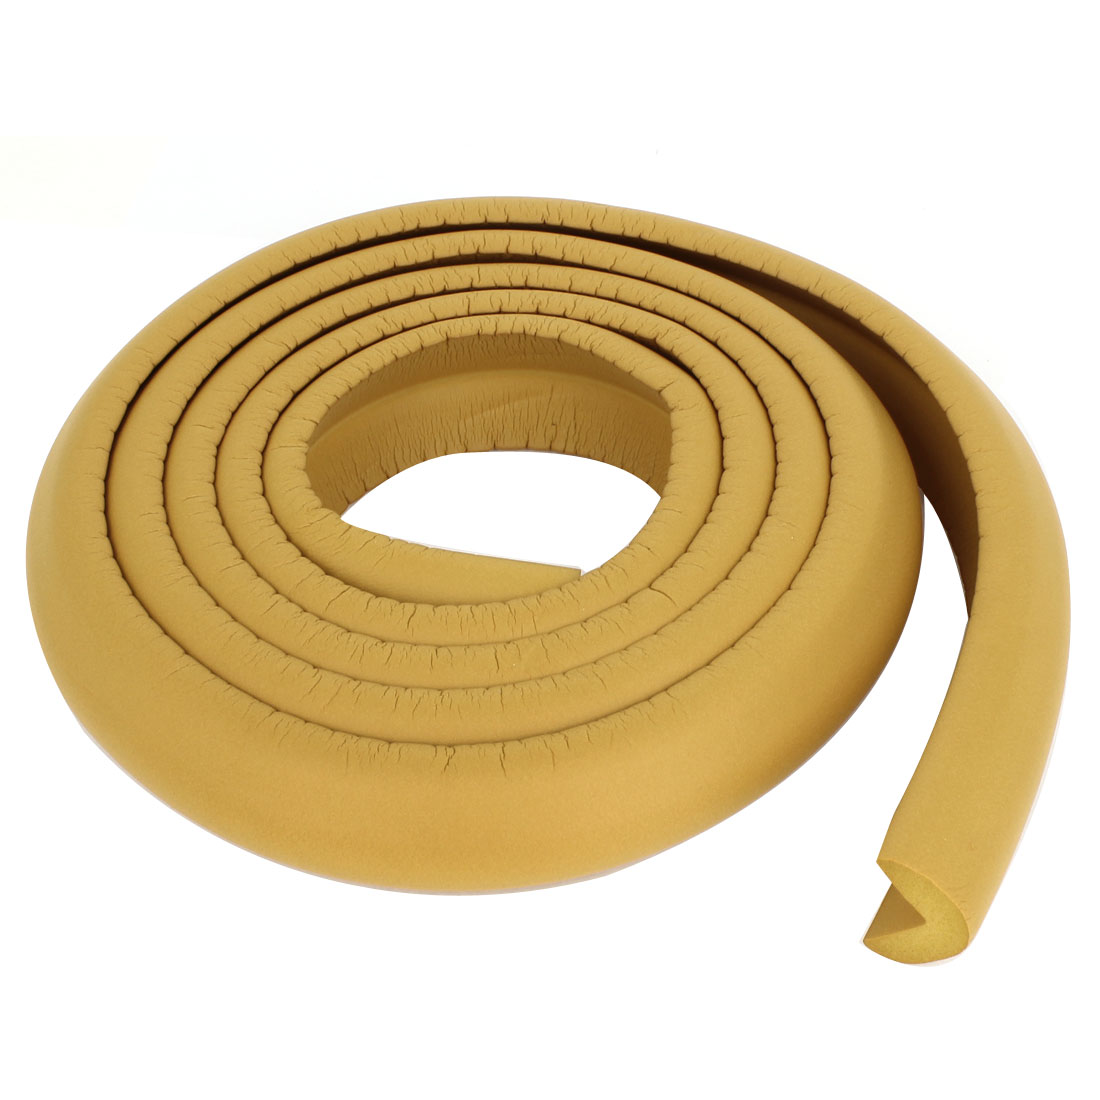 Khaki Soft Flexible Foam Table Edge Protector Corner Guard Strip 2M Long 3cm Width